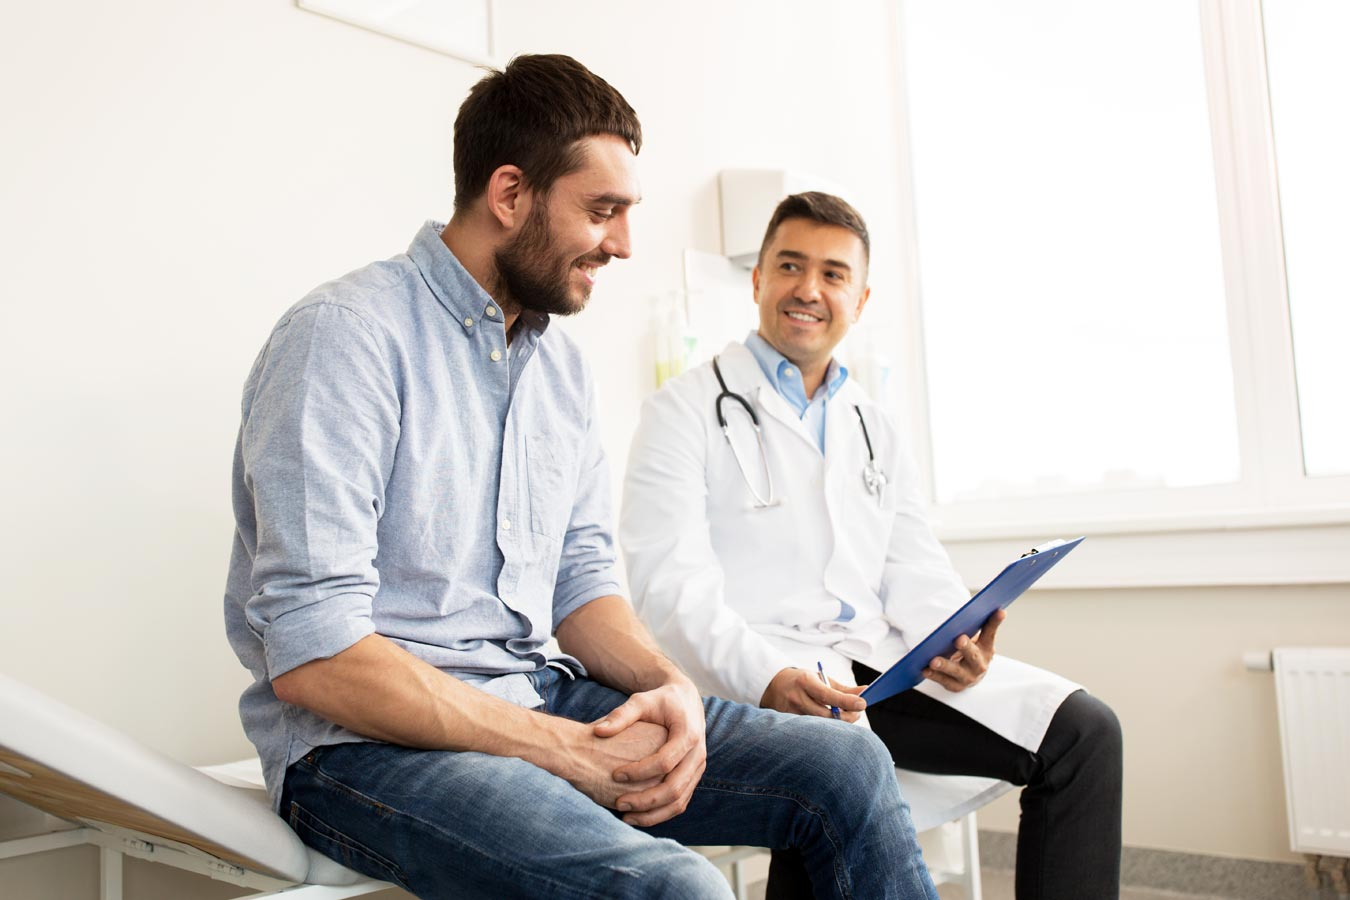 gooden-center-prescription-drug-addiction-photo-of-smiling-doctor-with-clipboard-and-young-man-patient-meeting-at-hospital